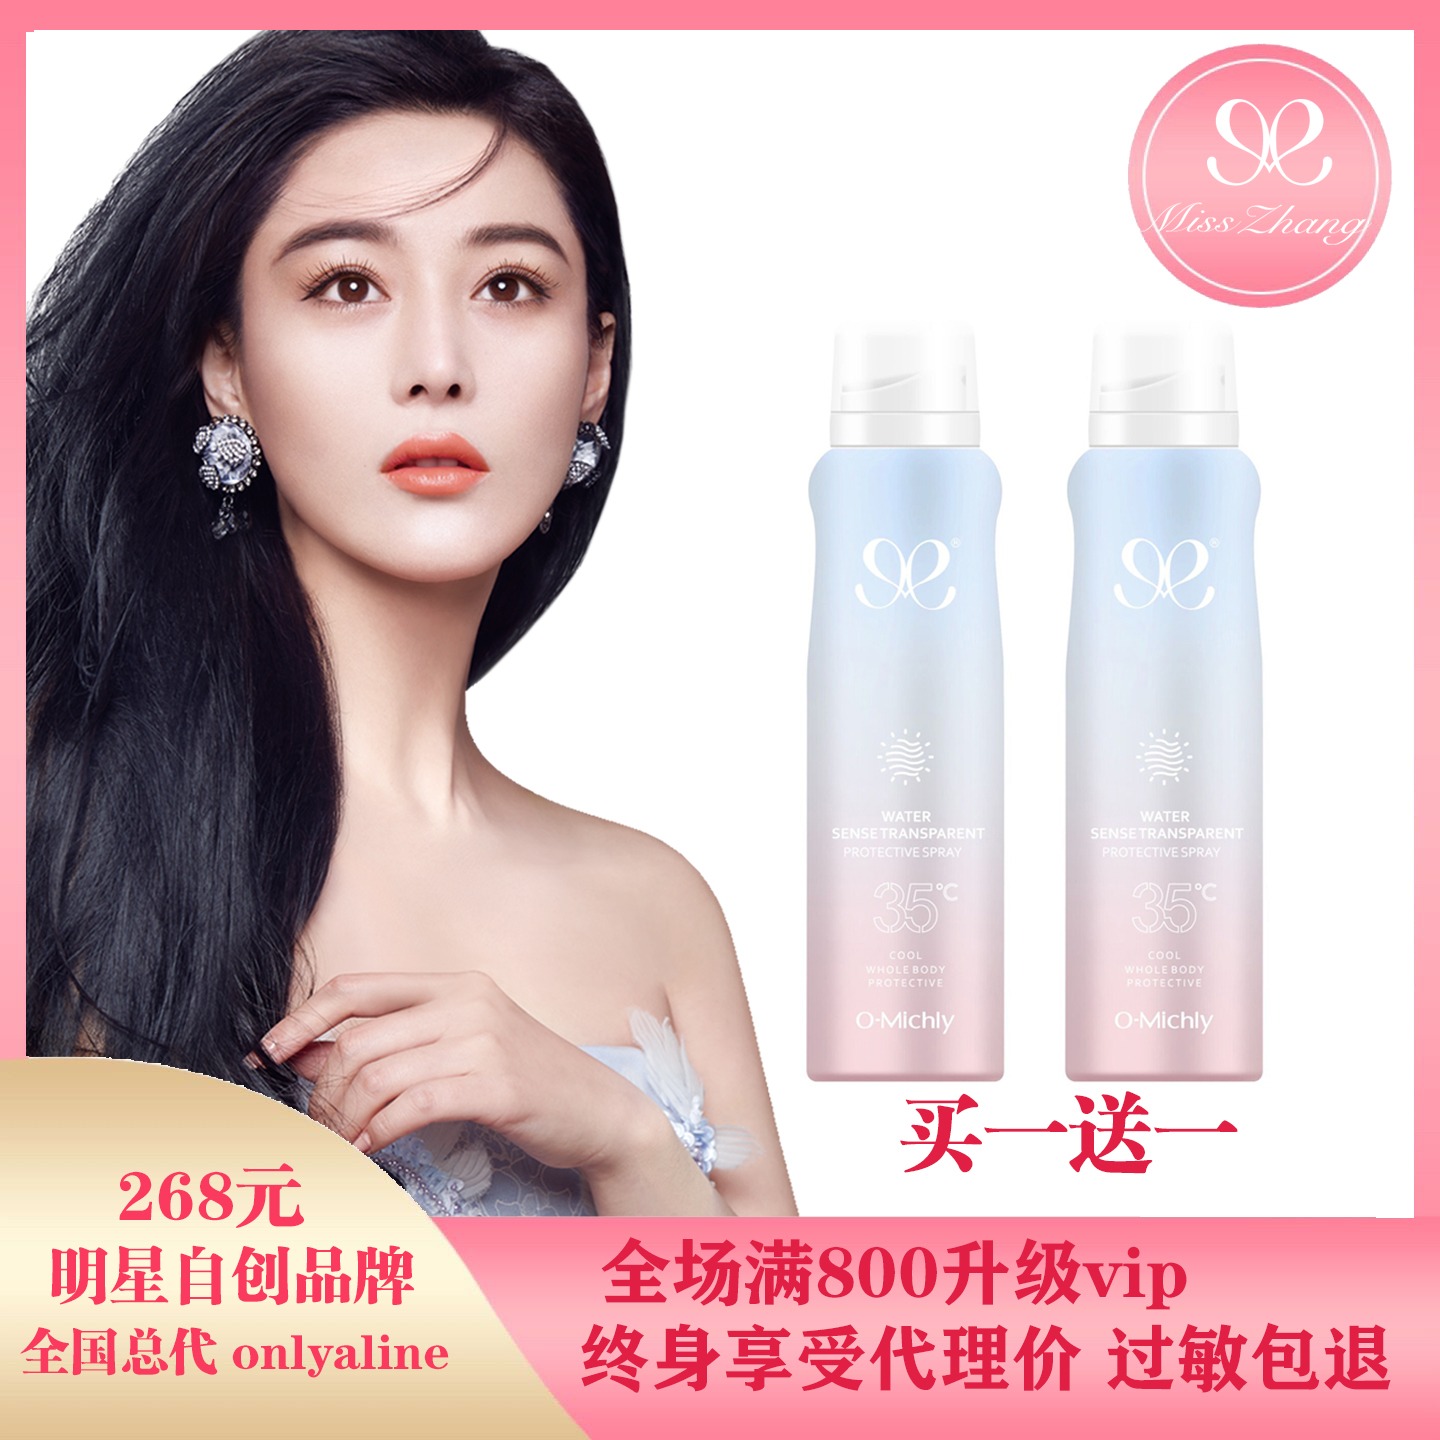 Zhang Xinyu recommends beauty care, MissZhang Sunscreen Spray, body protection, buy one get one omichly.